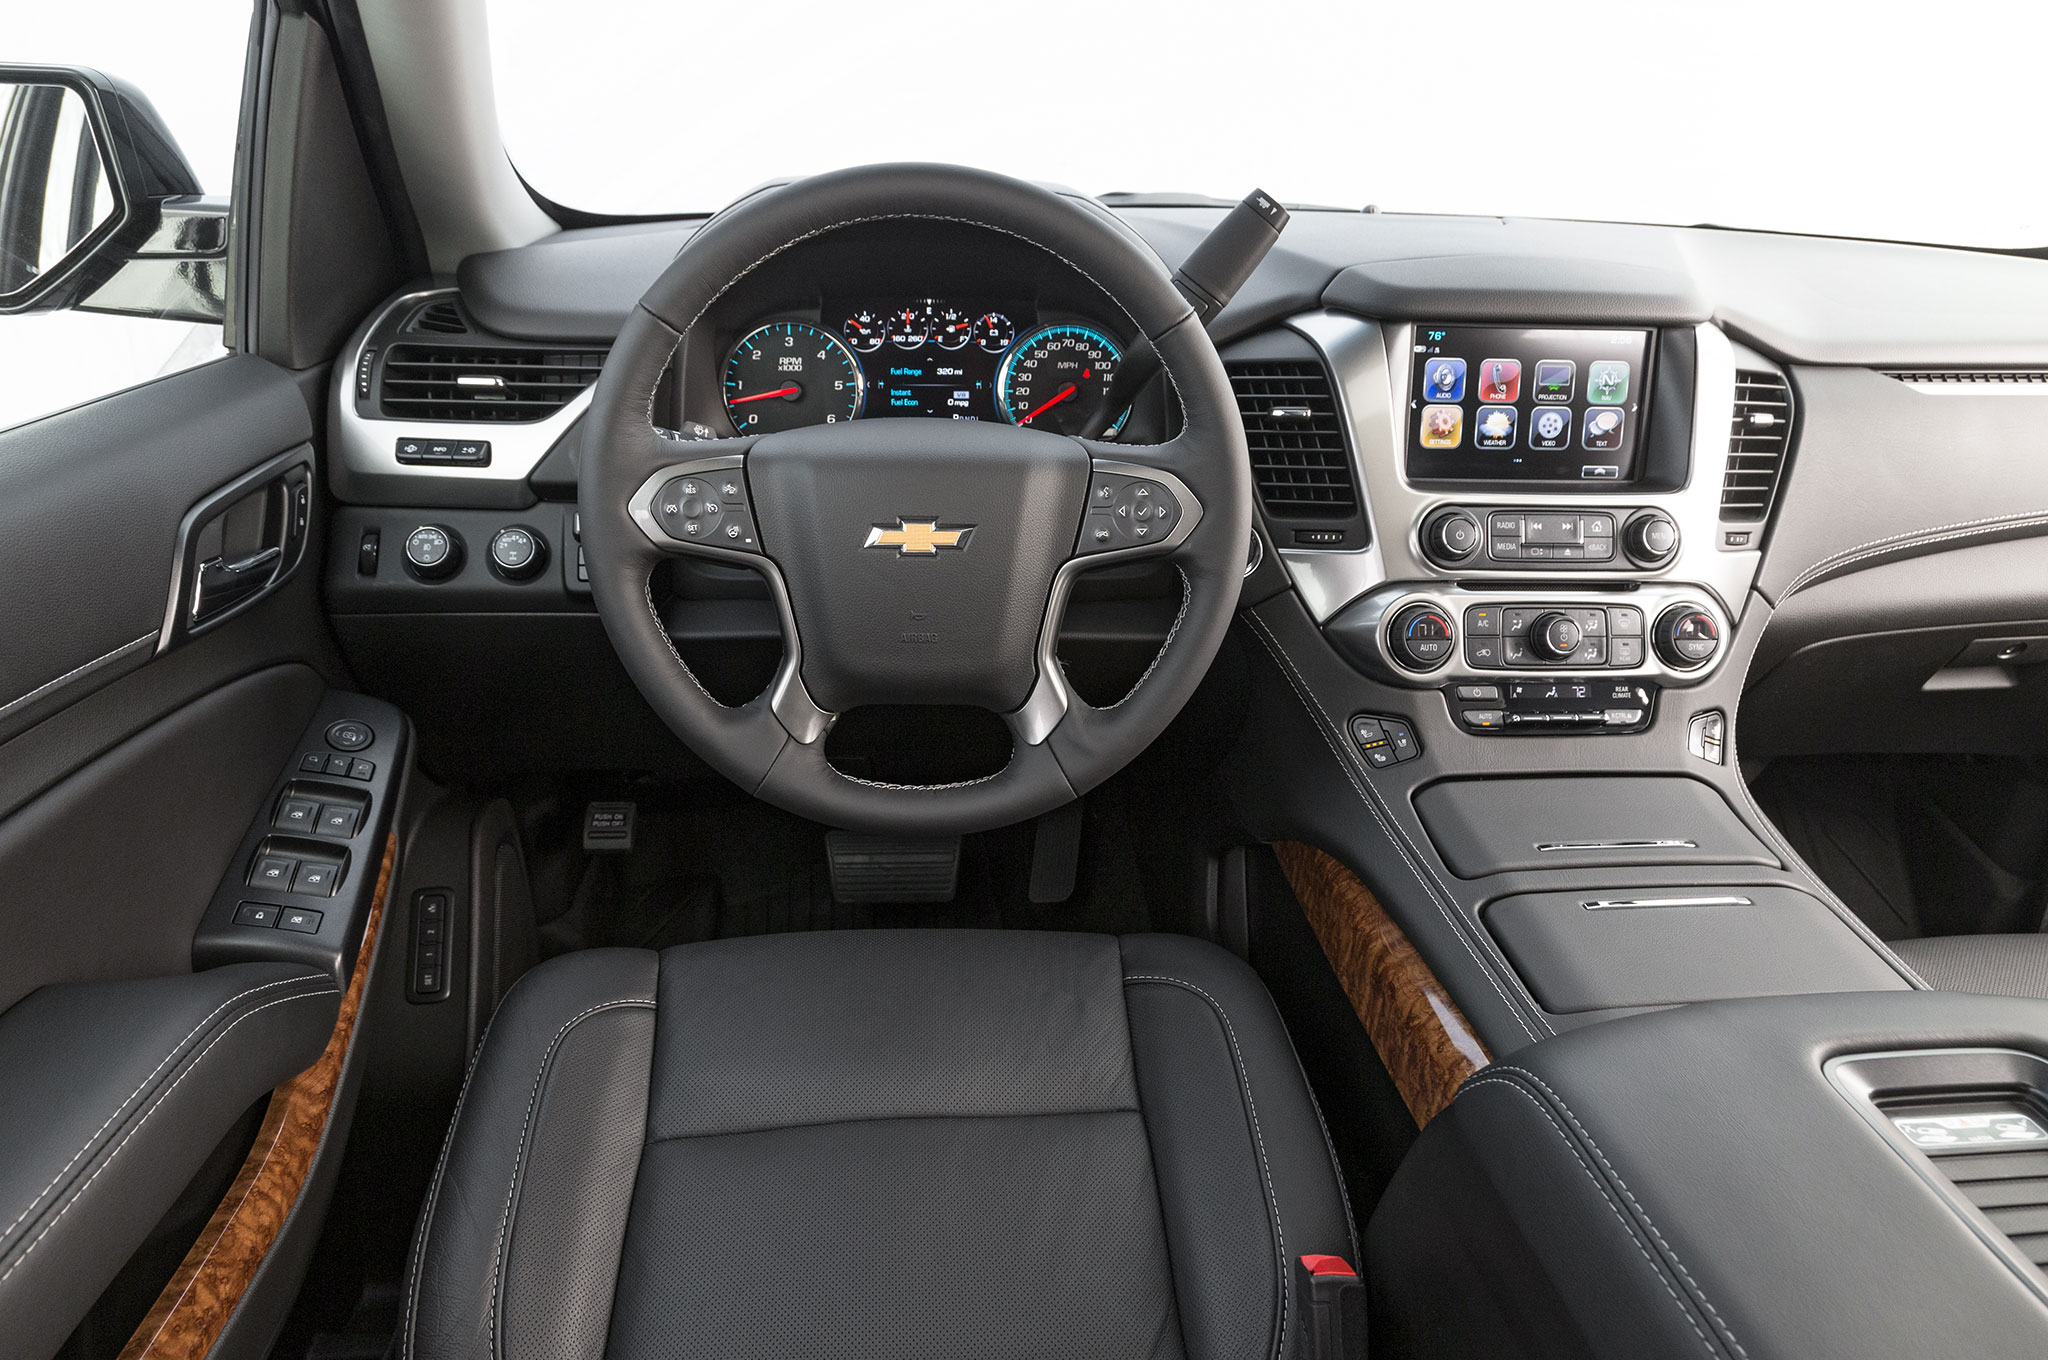 2018 Chevrolet Tahoe Rst Performance Package Interior